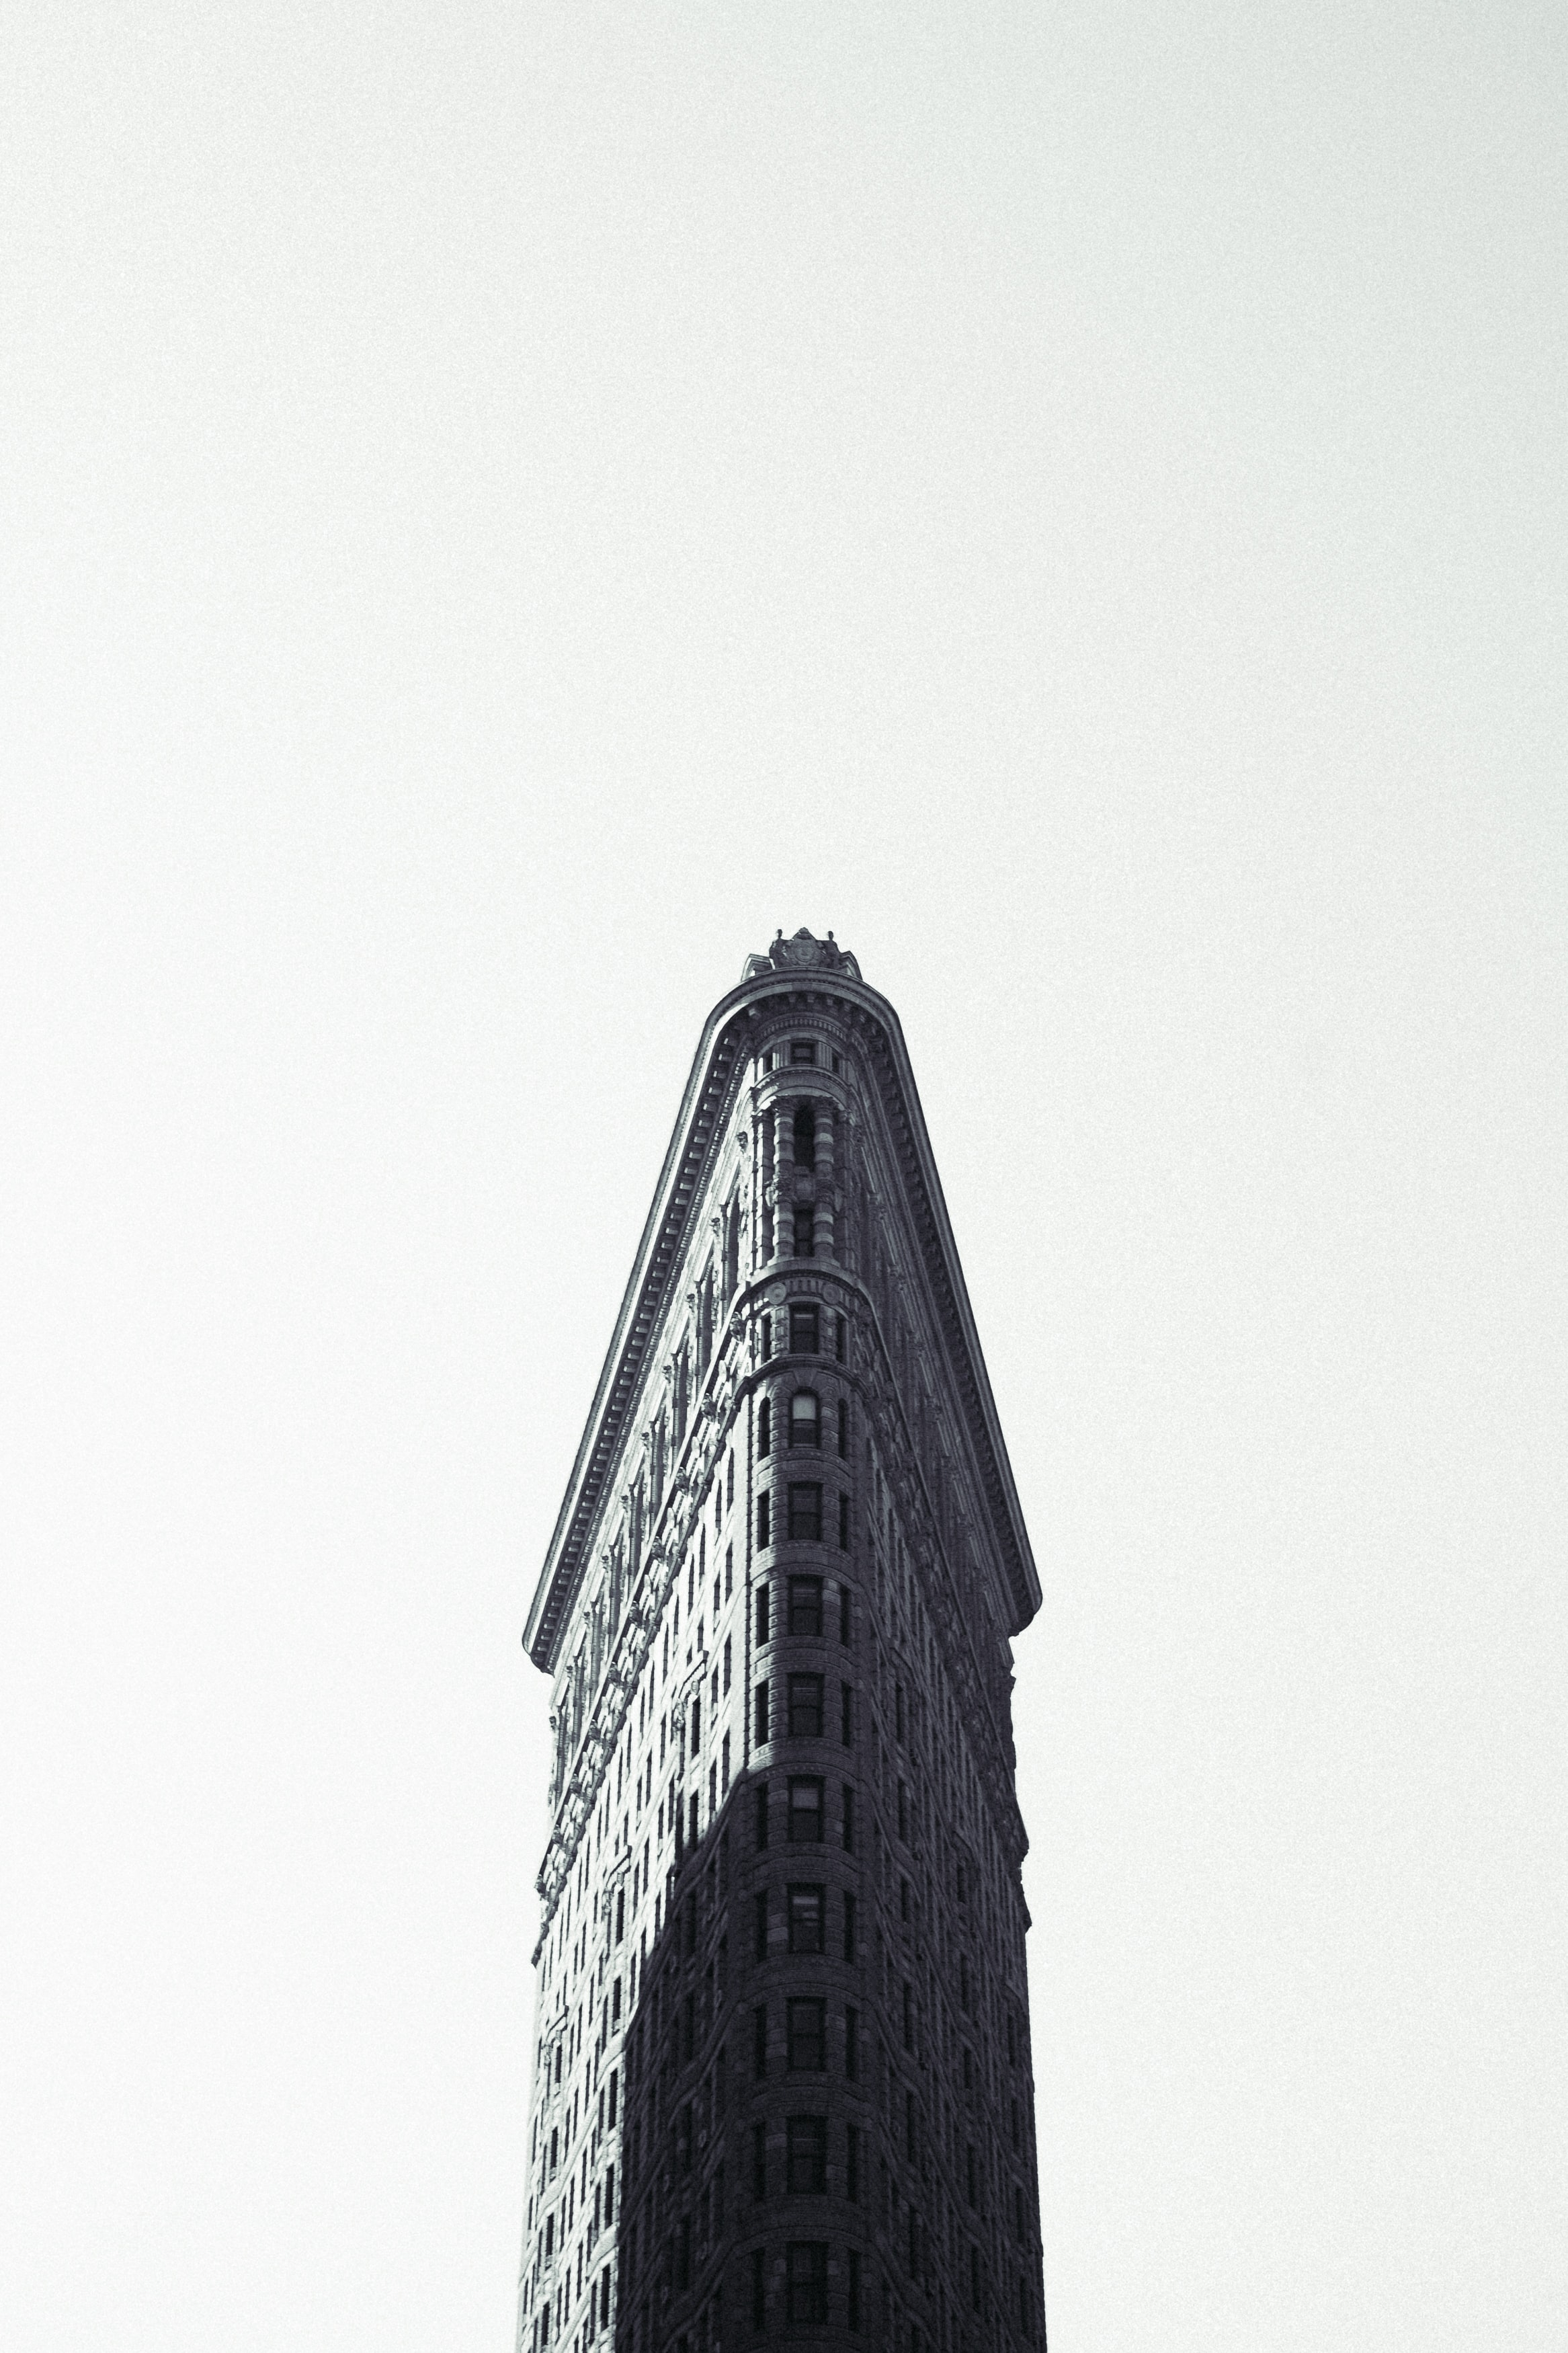 Black and white long shot of Flatiron building in New York with clear sky